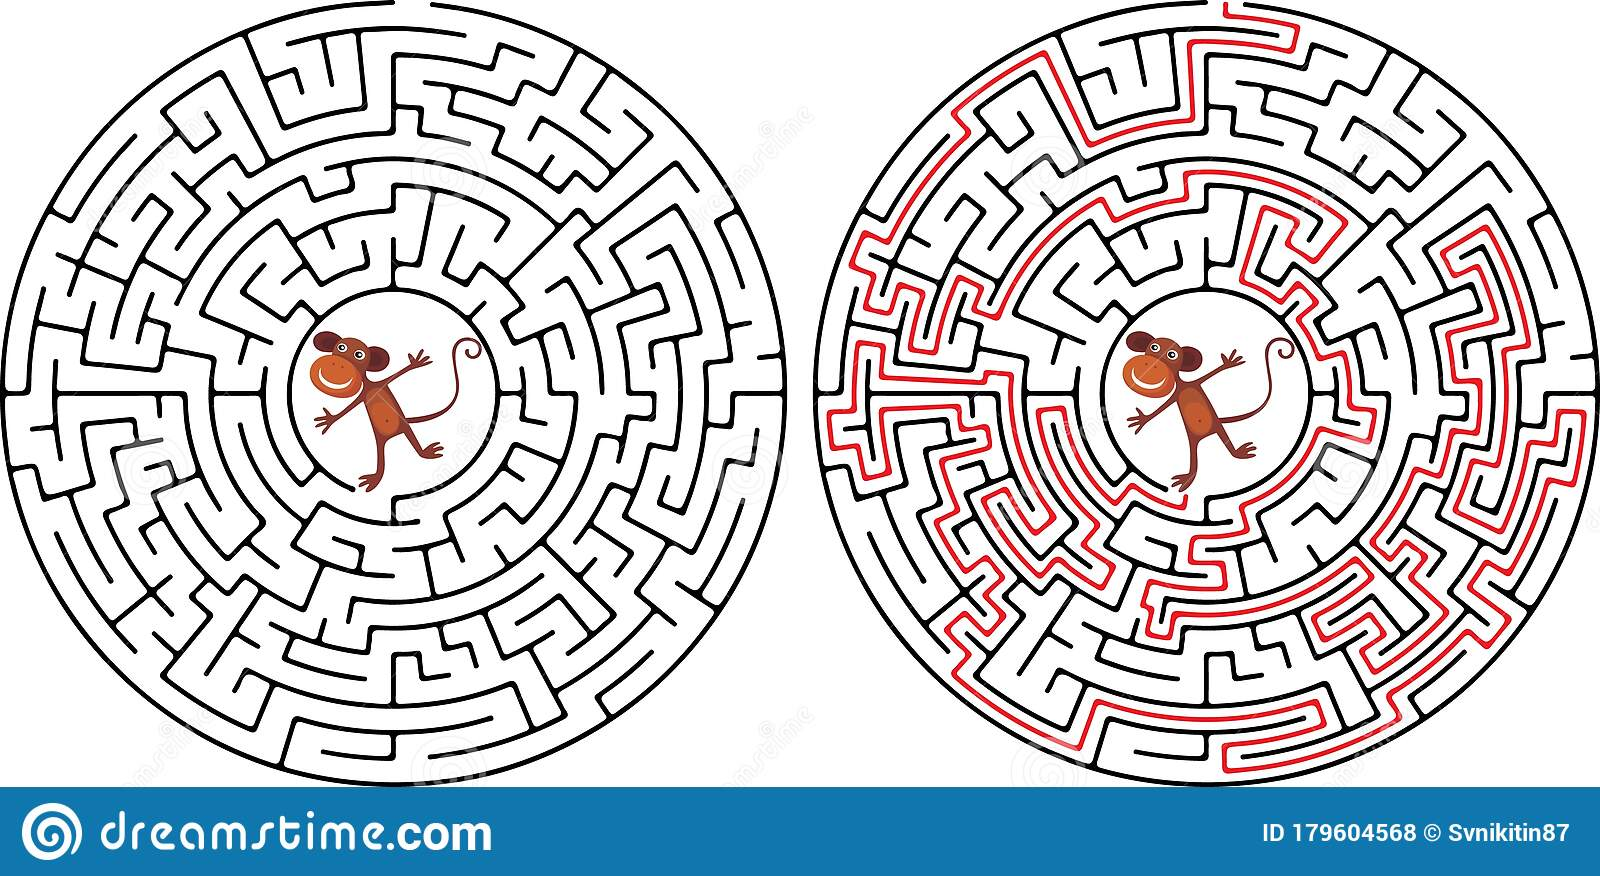 Maze Game For Kids Help The Monkeys To Get To The Coconut